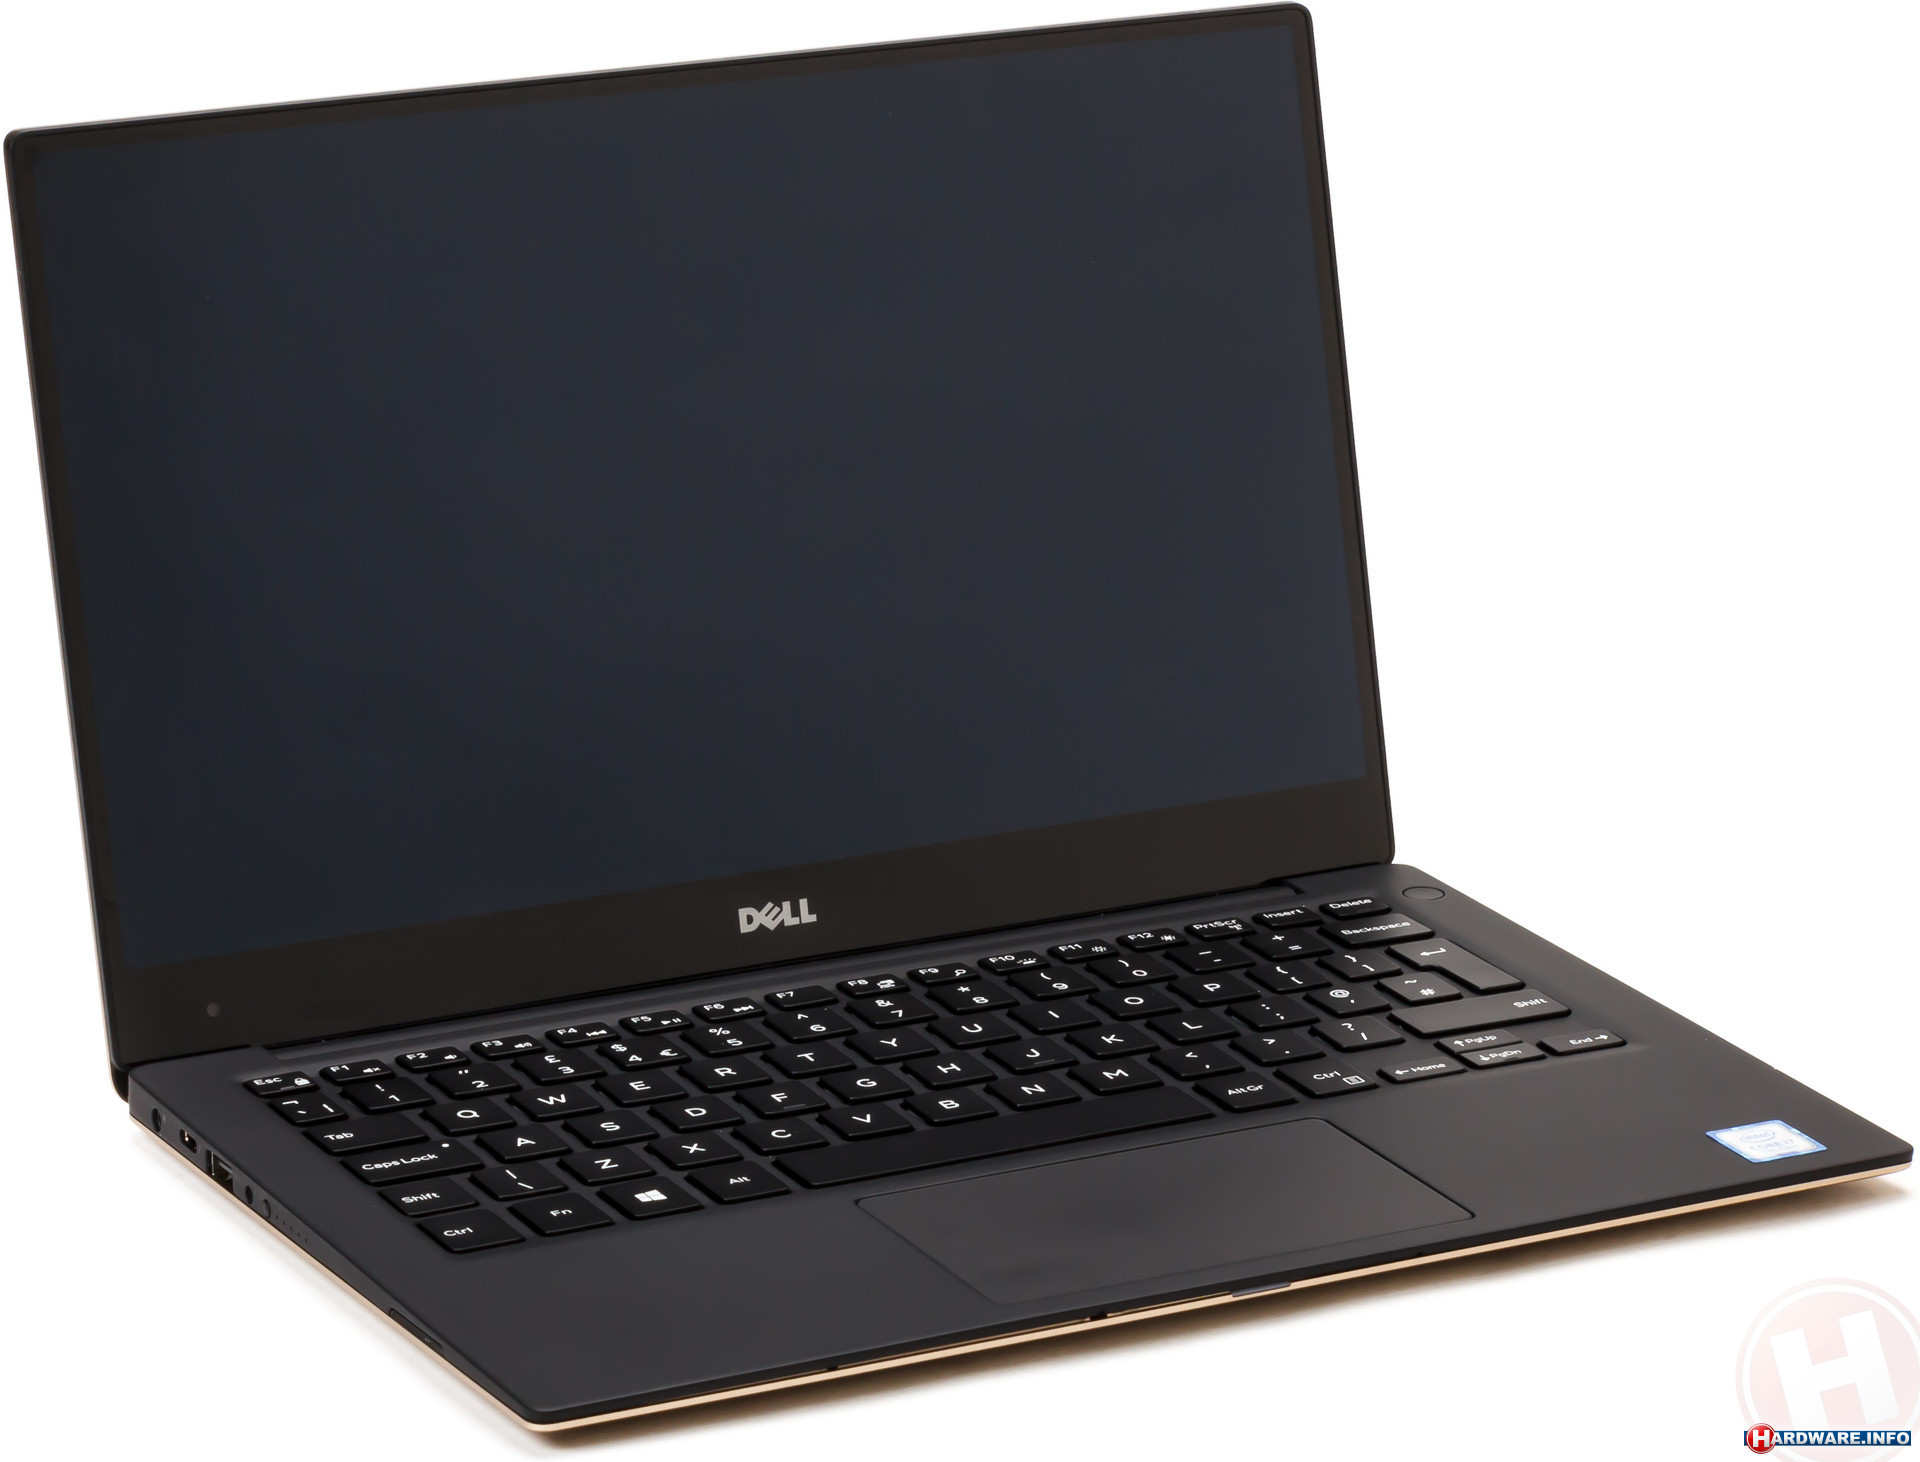 Dell XPS 13 issues